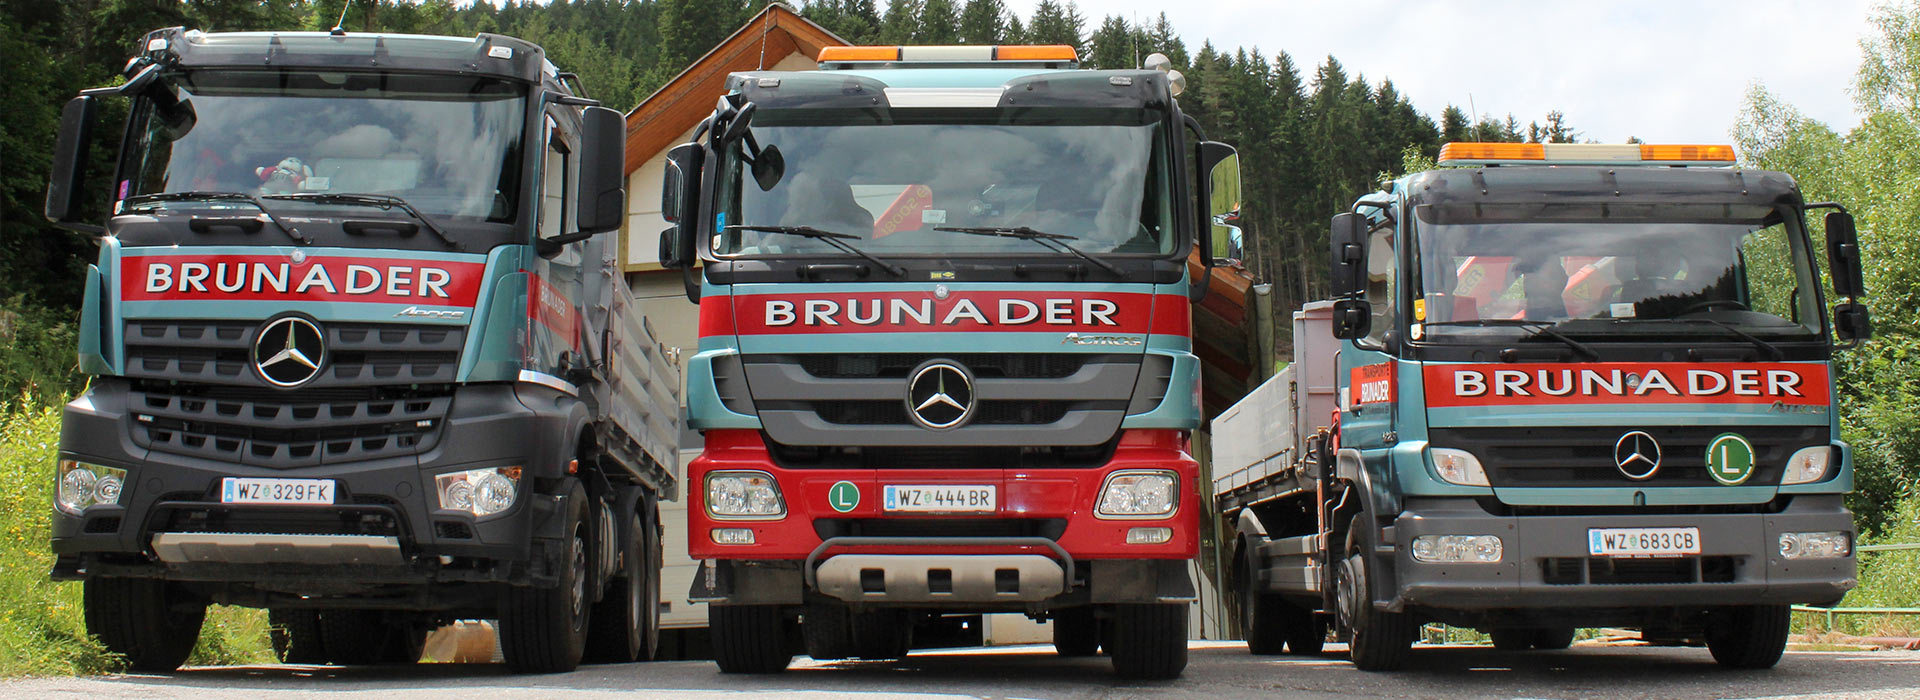 Brunader Transporte